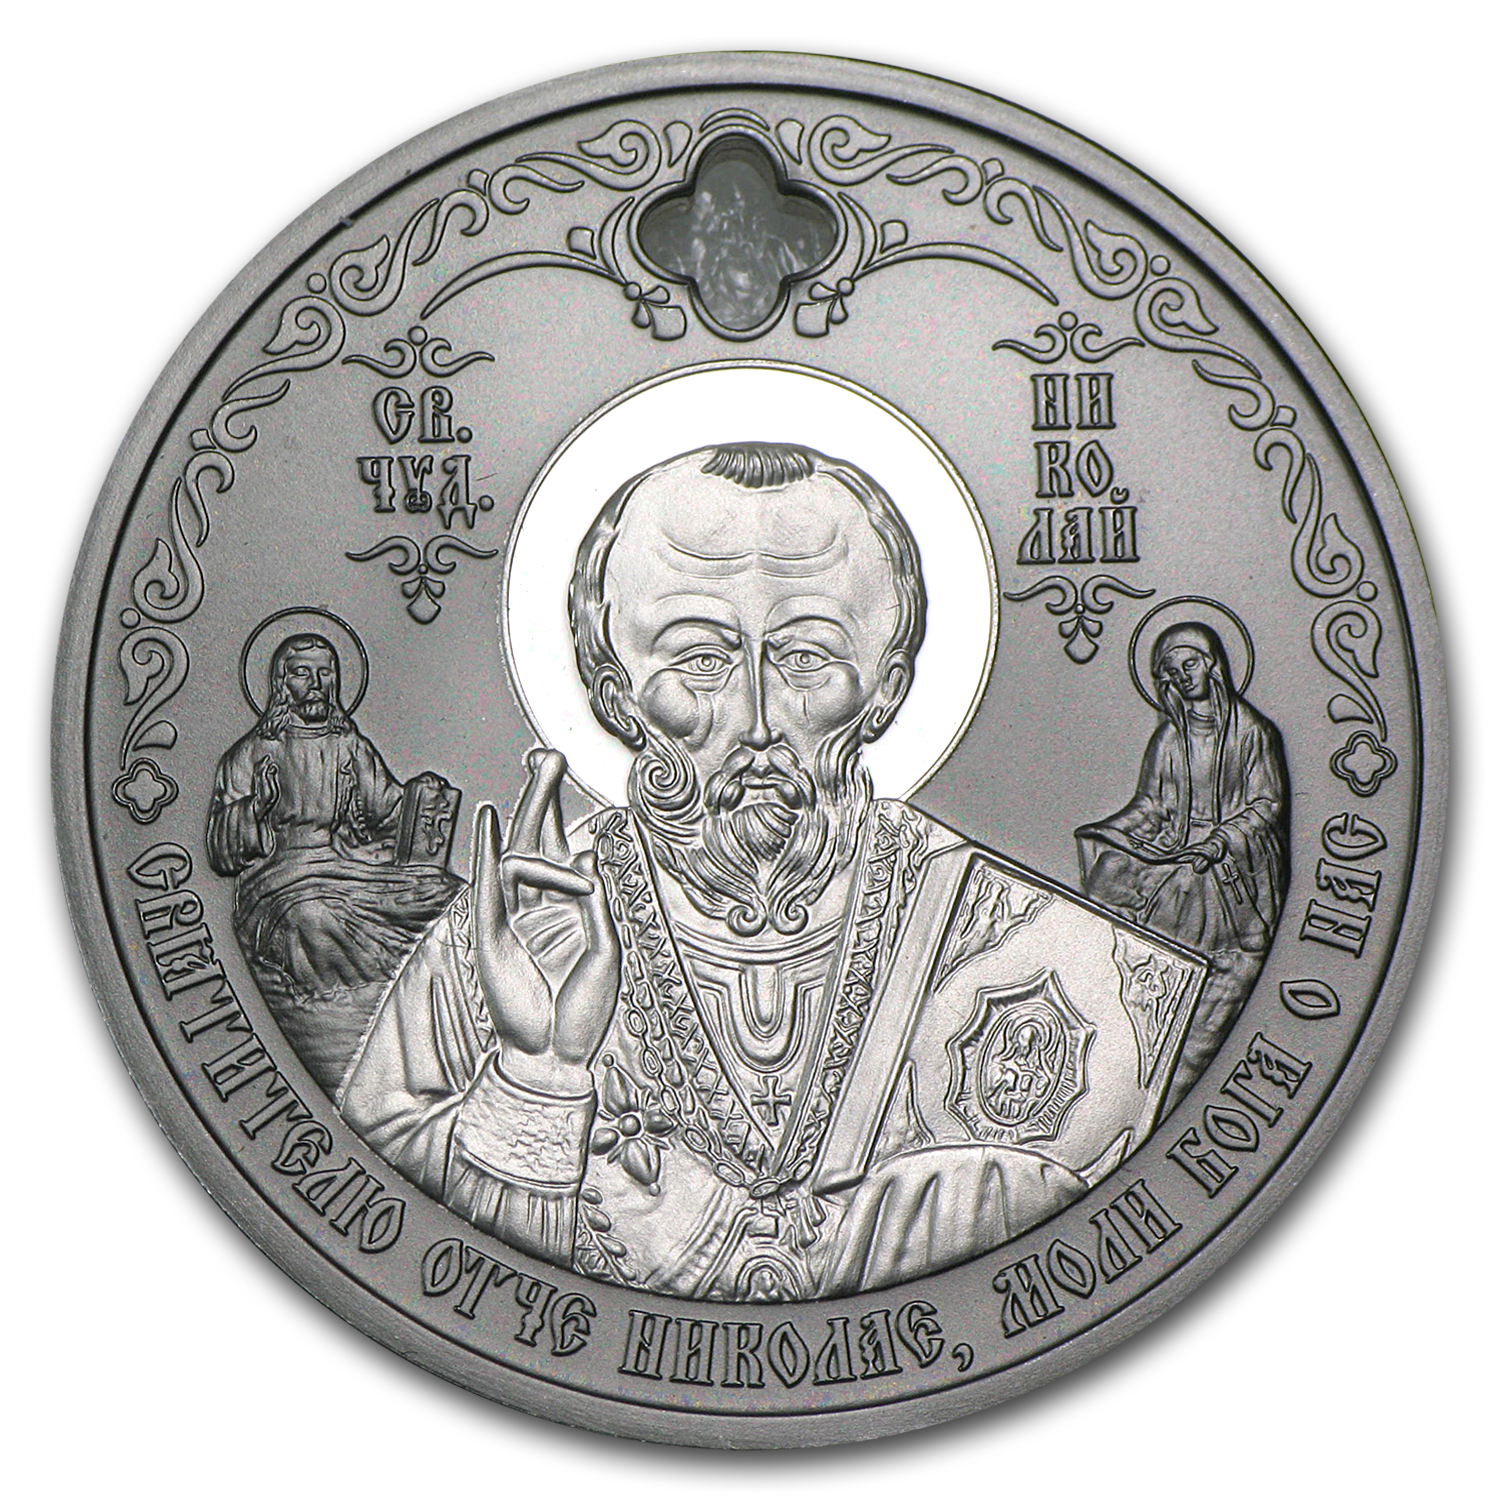 Cook Islands 2012 $2 St. Nikolay - The Keeper